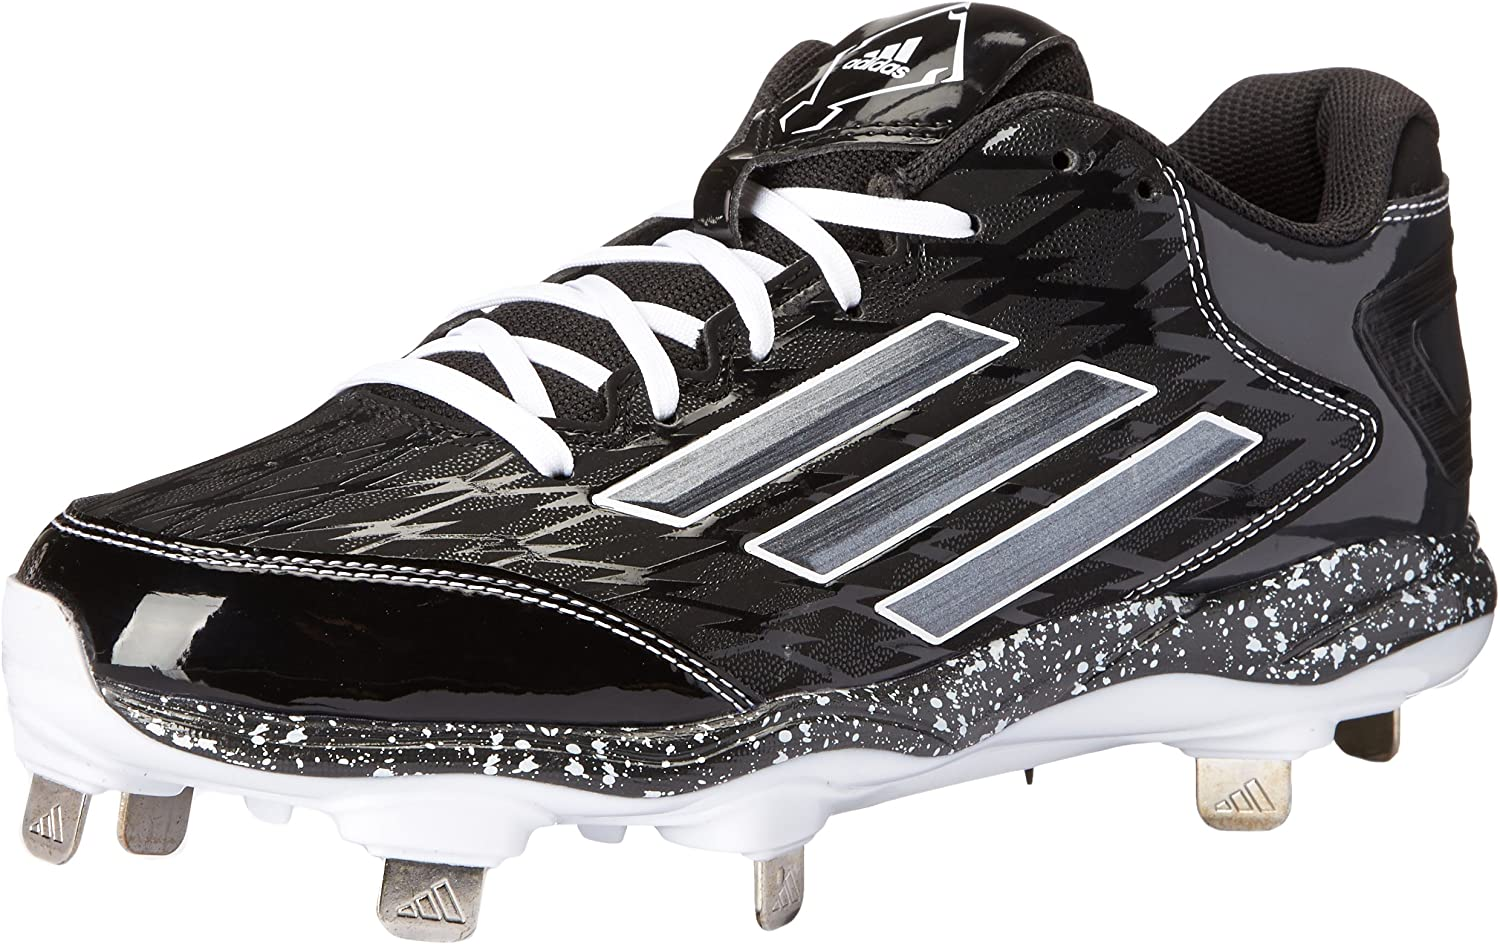 PowerAlley 2 W Softball Cleat